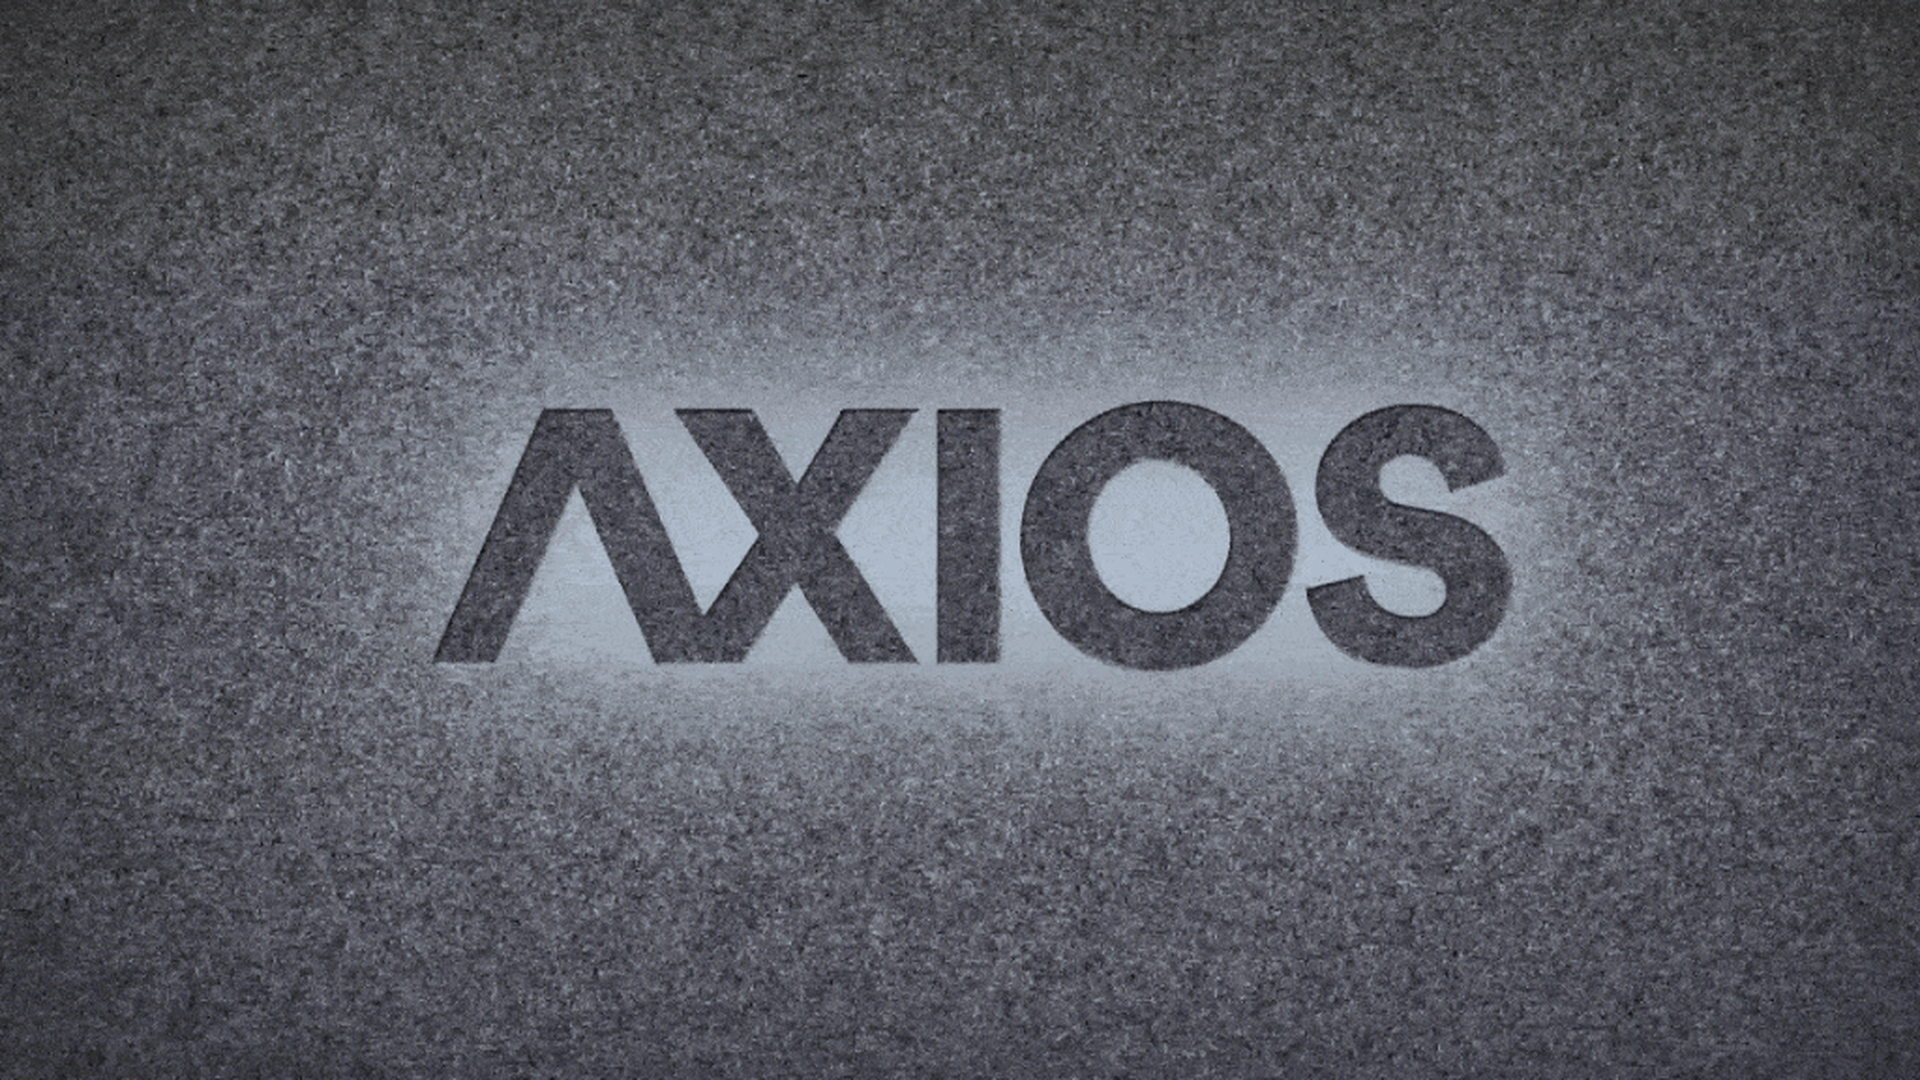 Coming this fall: Axios signs deal with HBO to produce docu-news ...